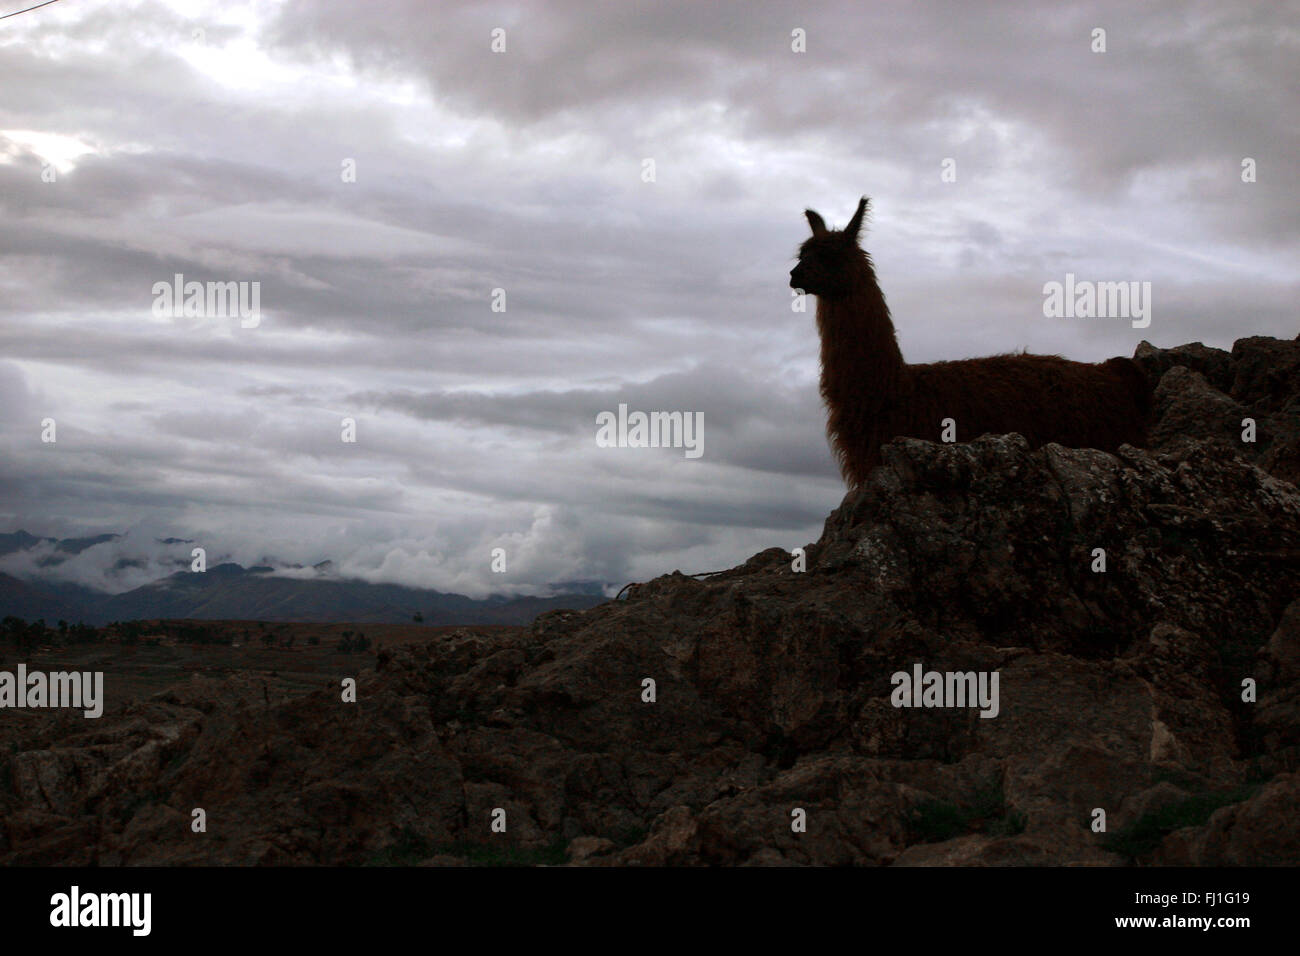 Shadow of a lama at the end of day in the Altiplano - iconic image - Stock Image